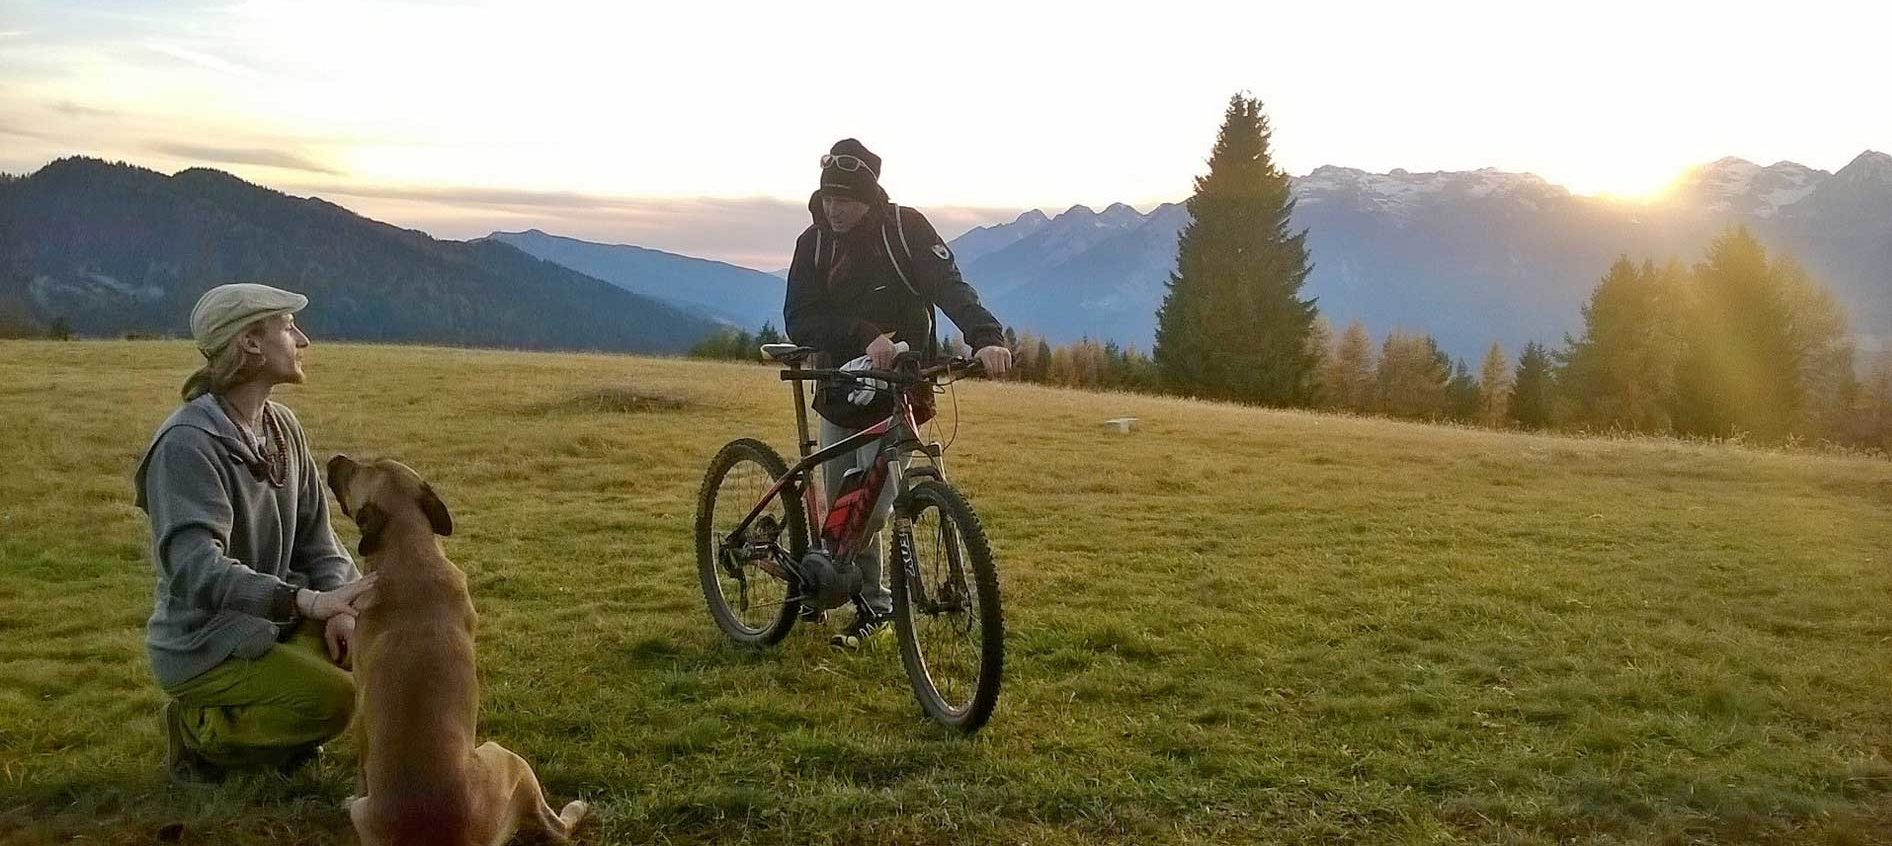 Mountain Bike per tutti i gusti